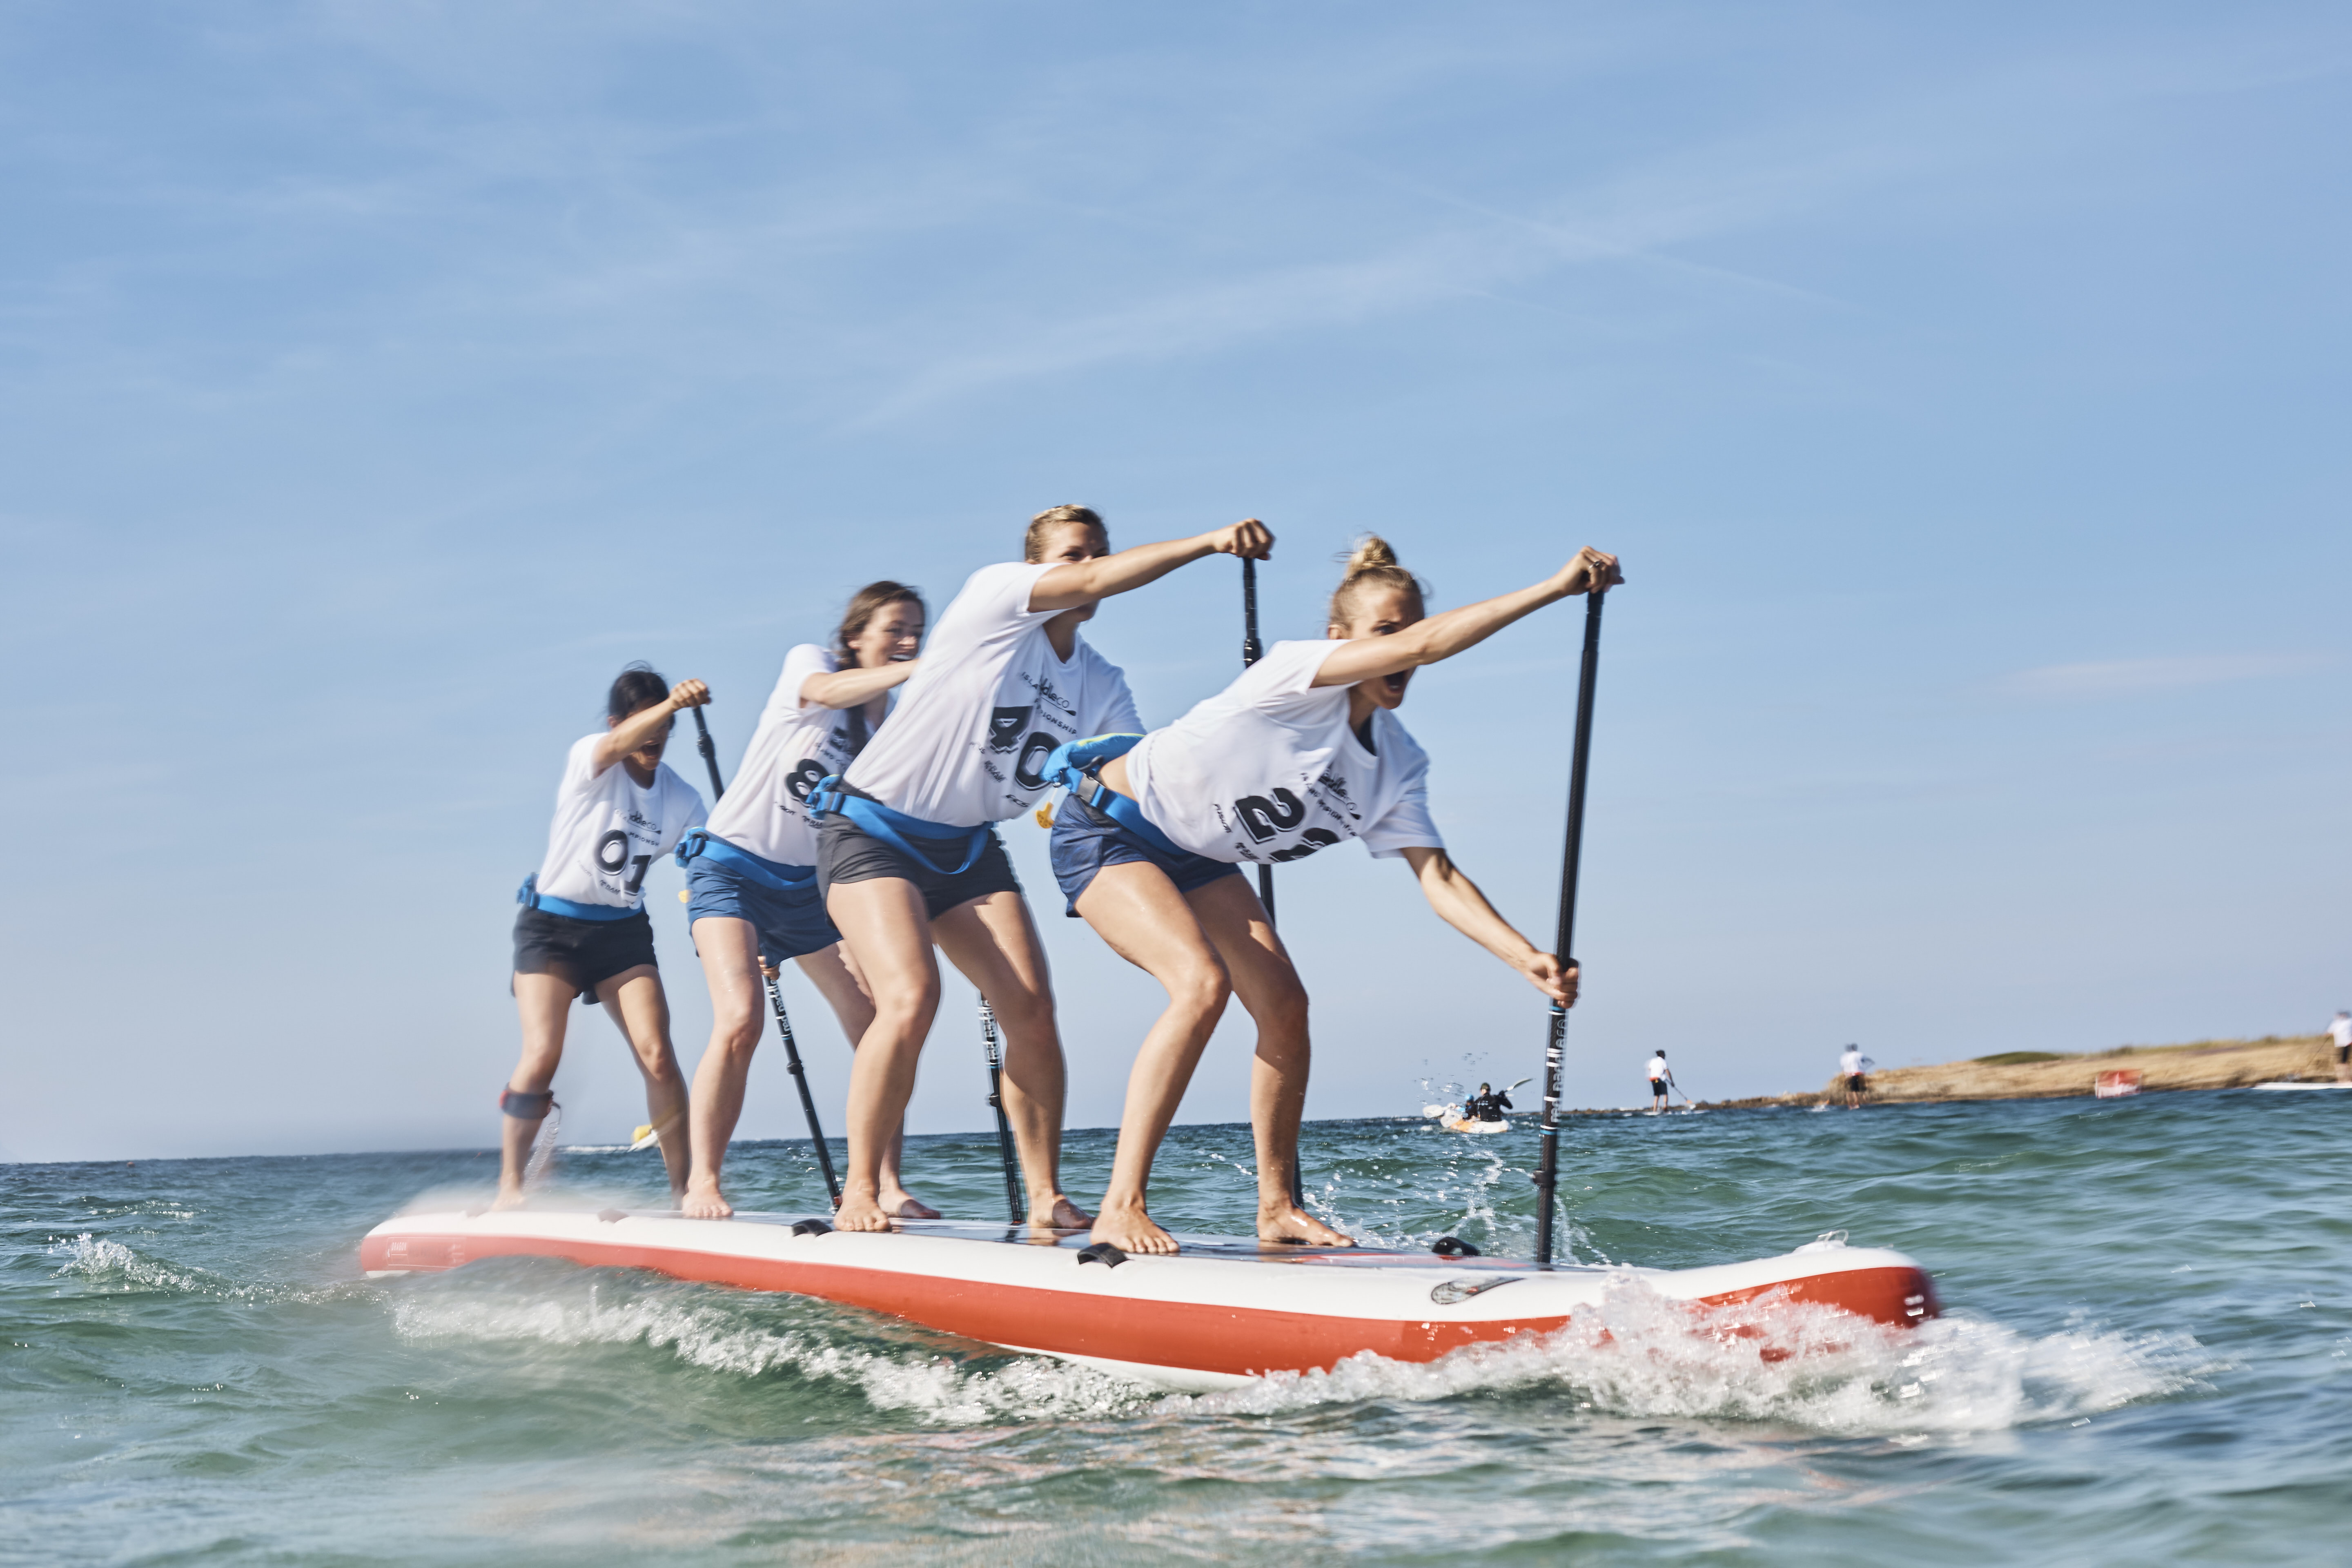 Four women wade into the sea at the Dragon World Championships with the Red Dragon 22ft stand up paddle board.